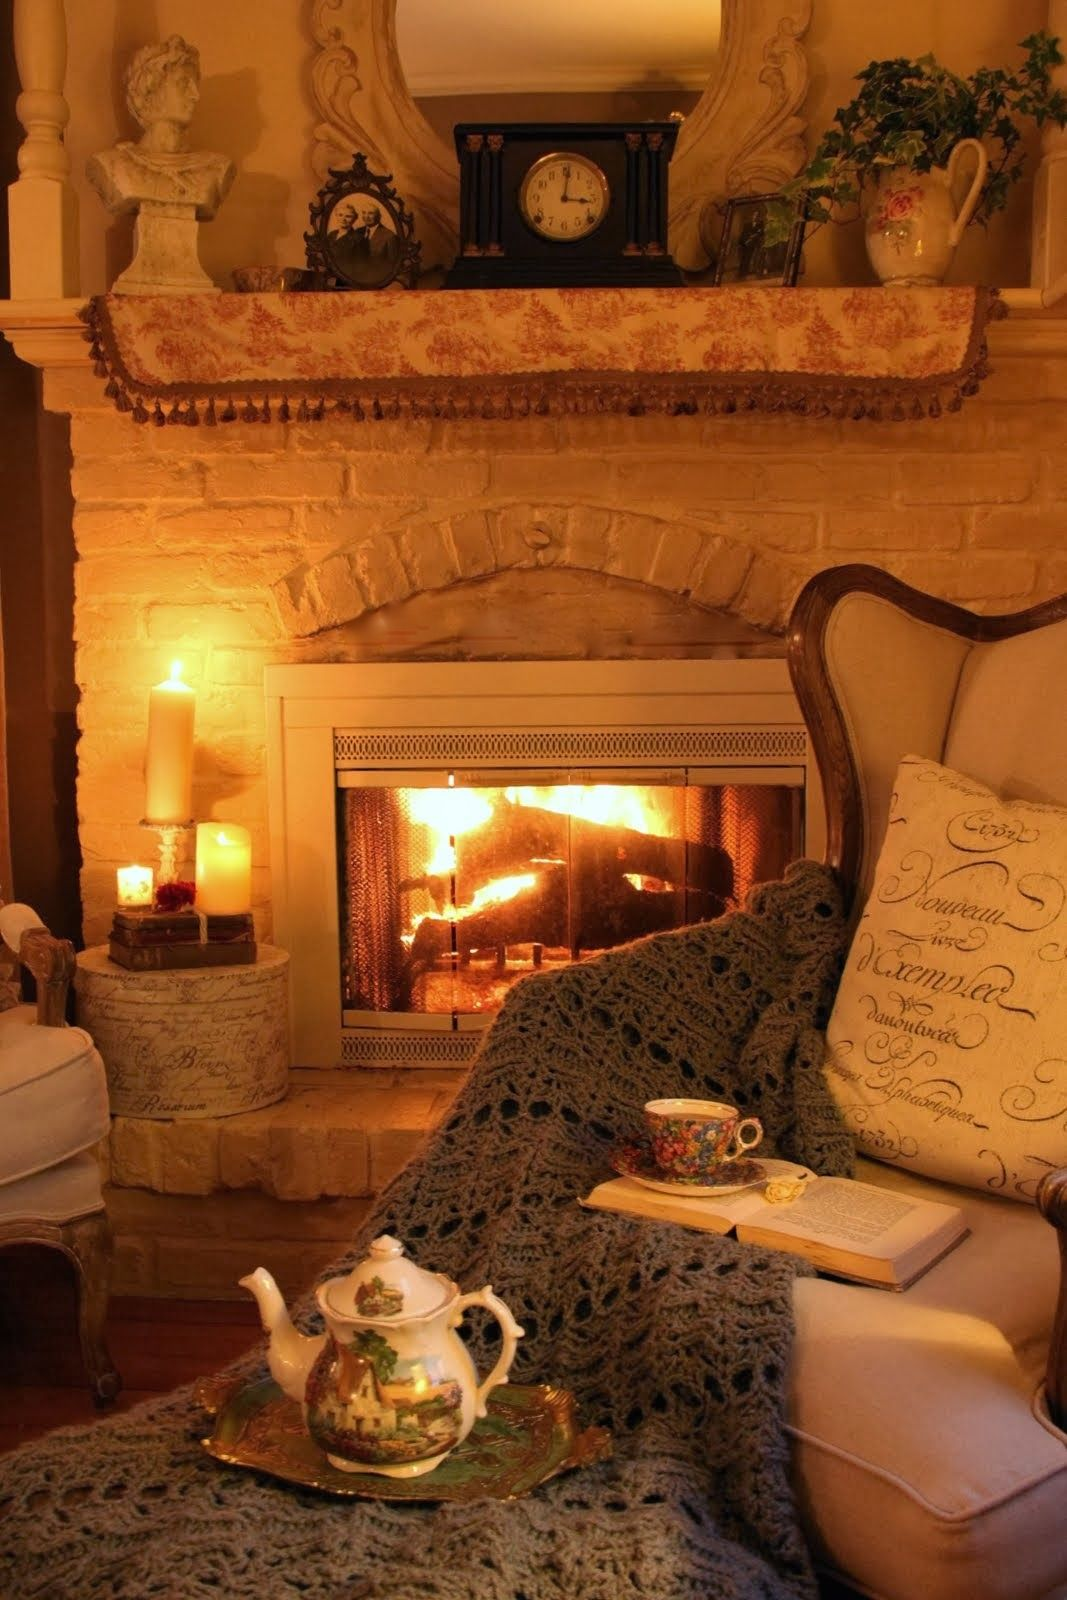 A Cheery Fire In The Hearth A Cozy Armchair Blanket Tea Book Settled For The Night Cozy House Cozy Fireplace Cozy Cottage